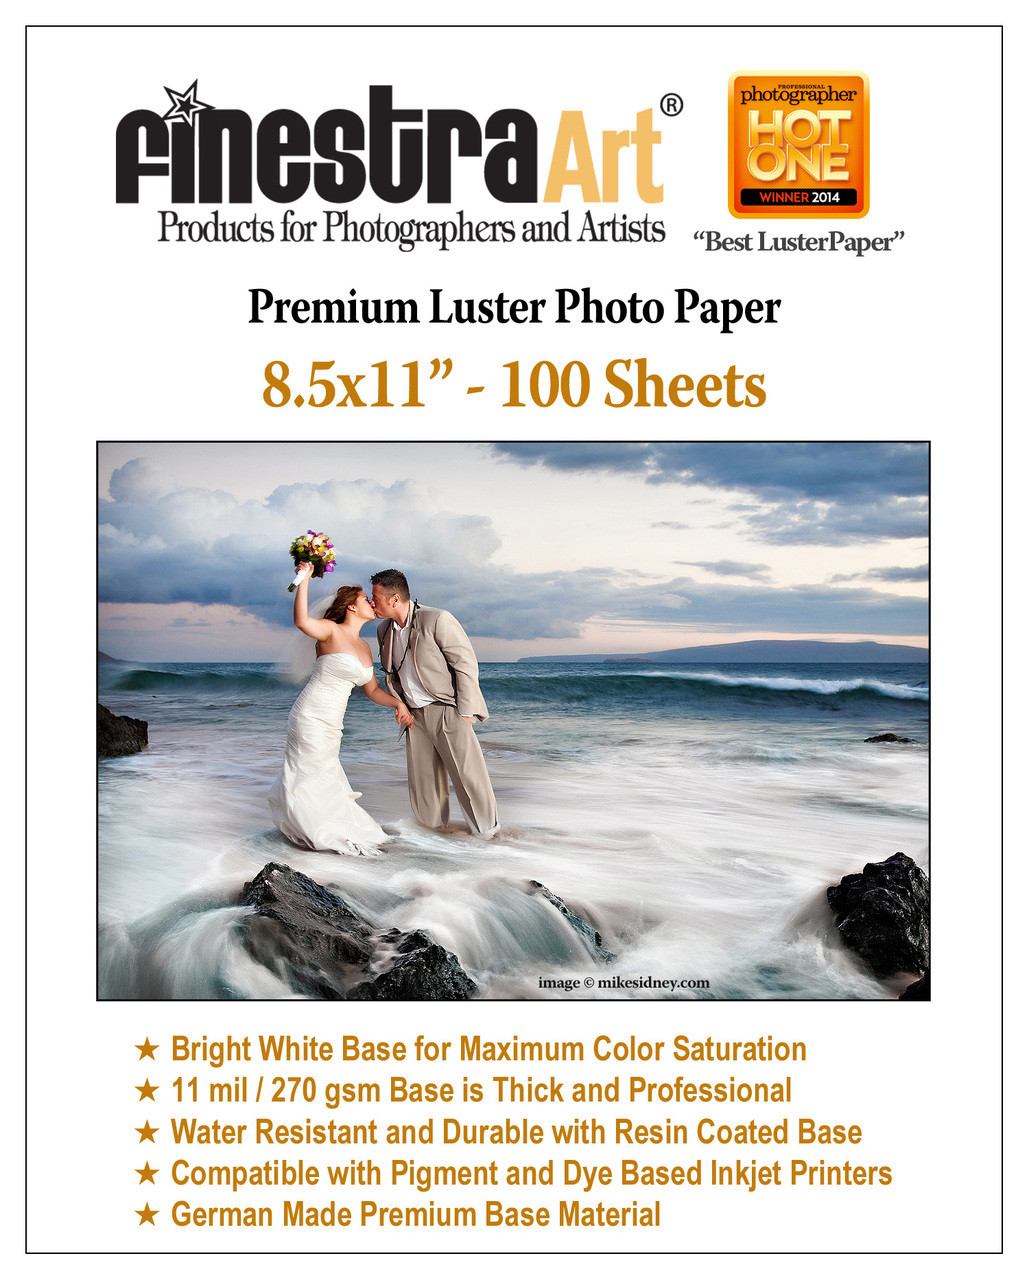 85x11 Premium Luster Photo Paper 100 Sheets Finestra Art